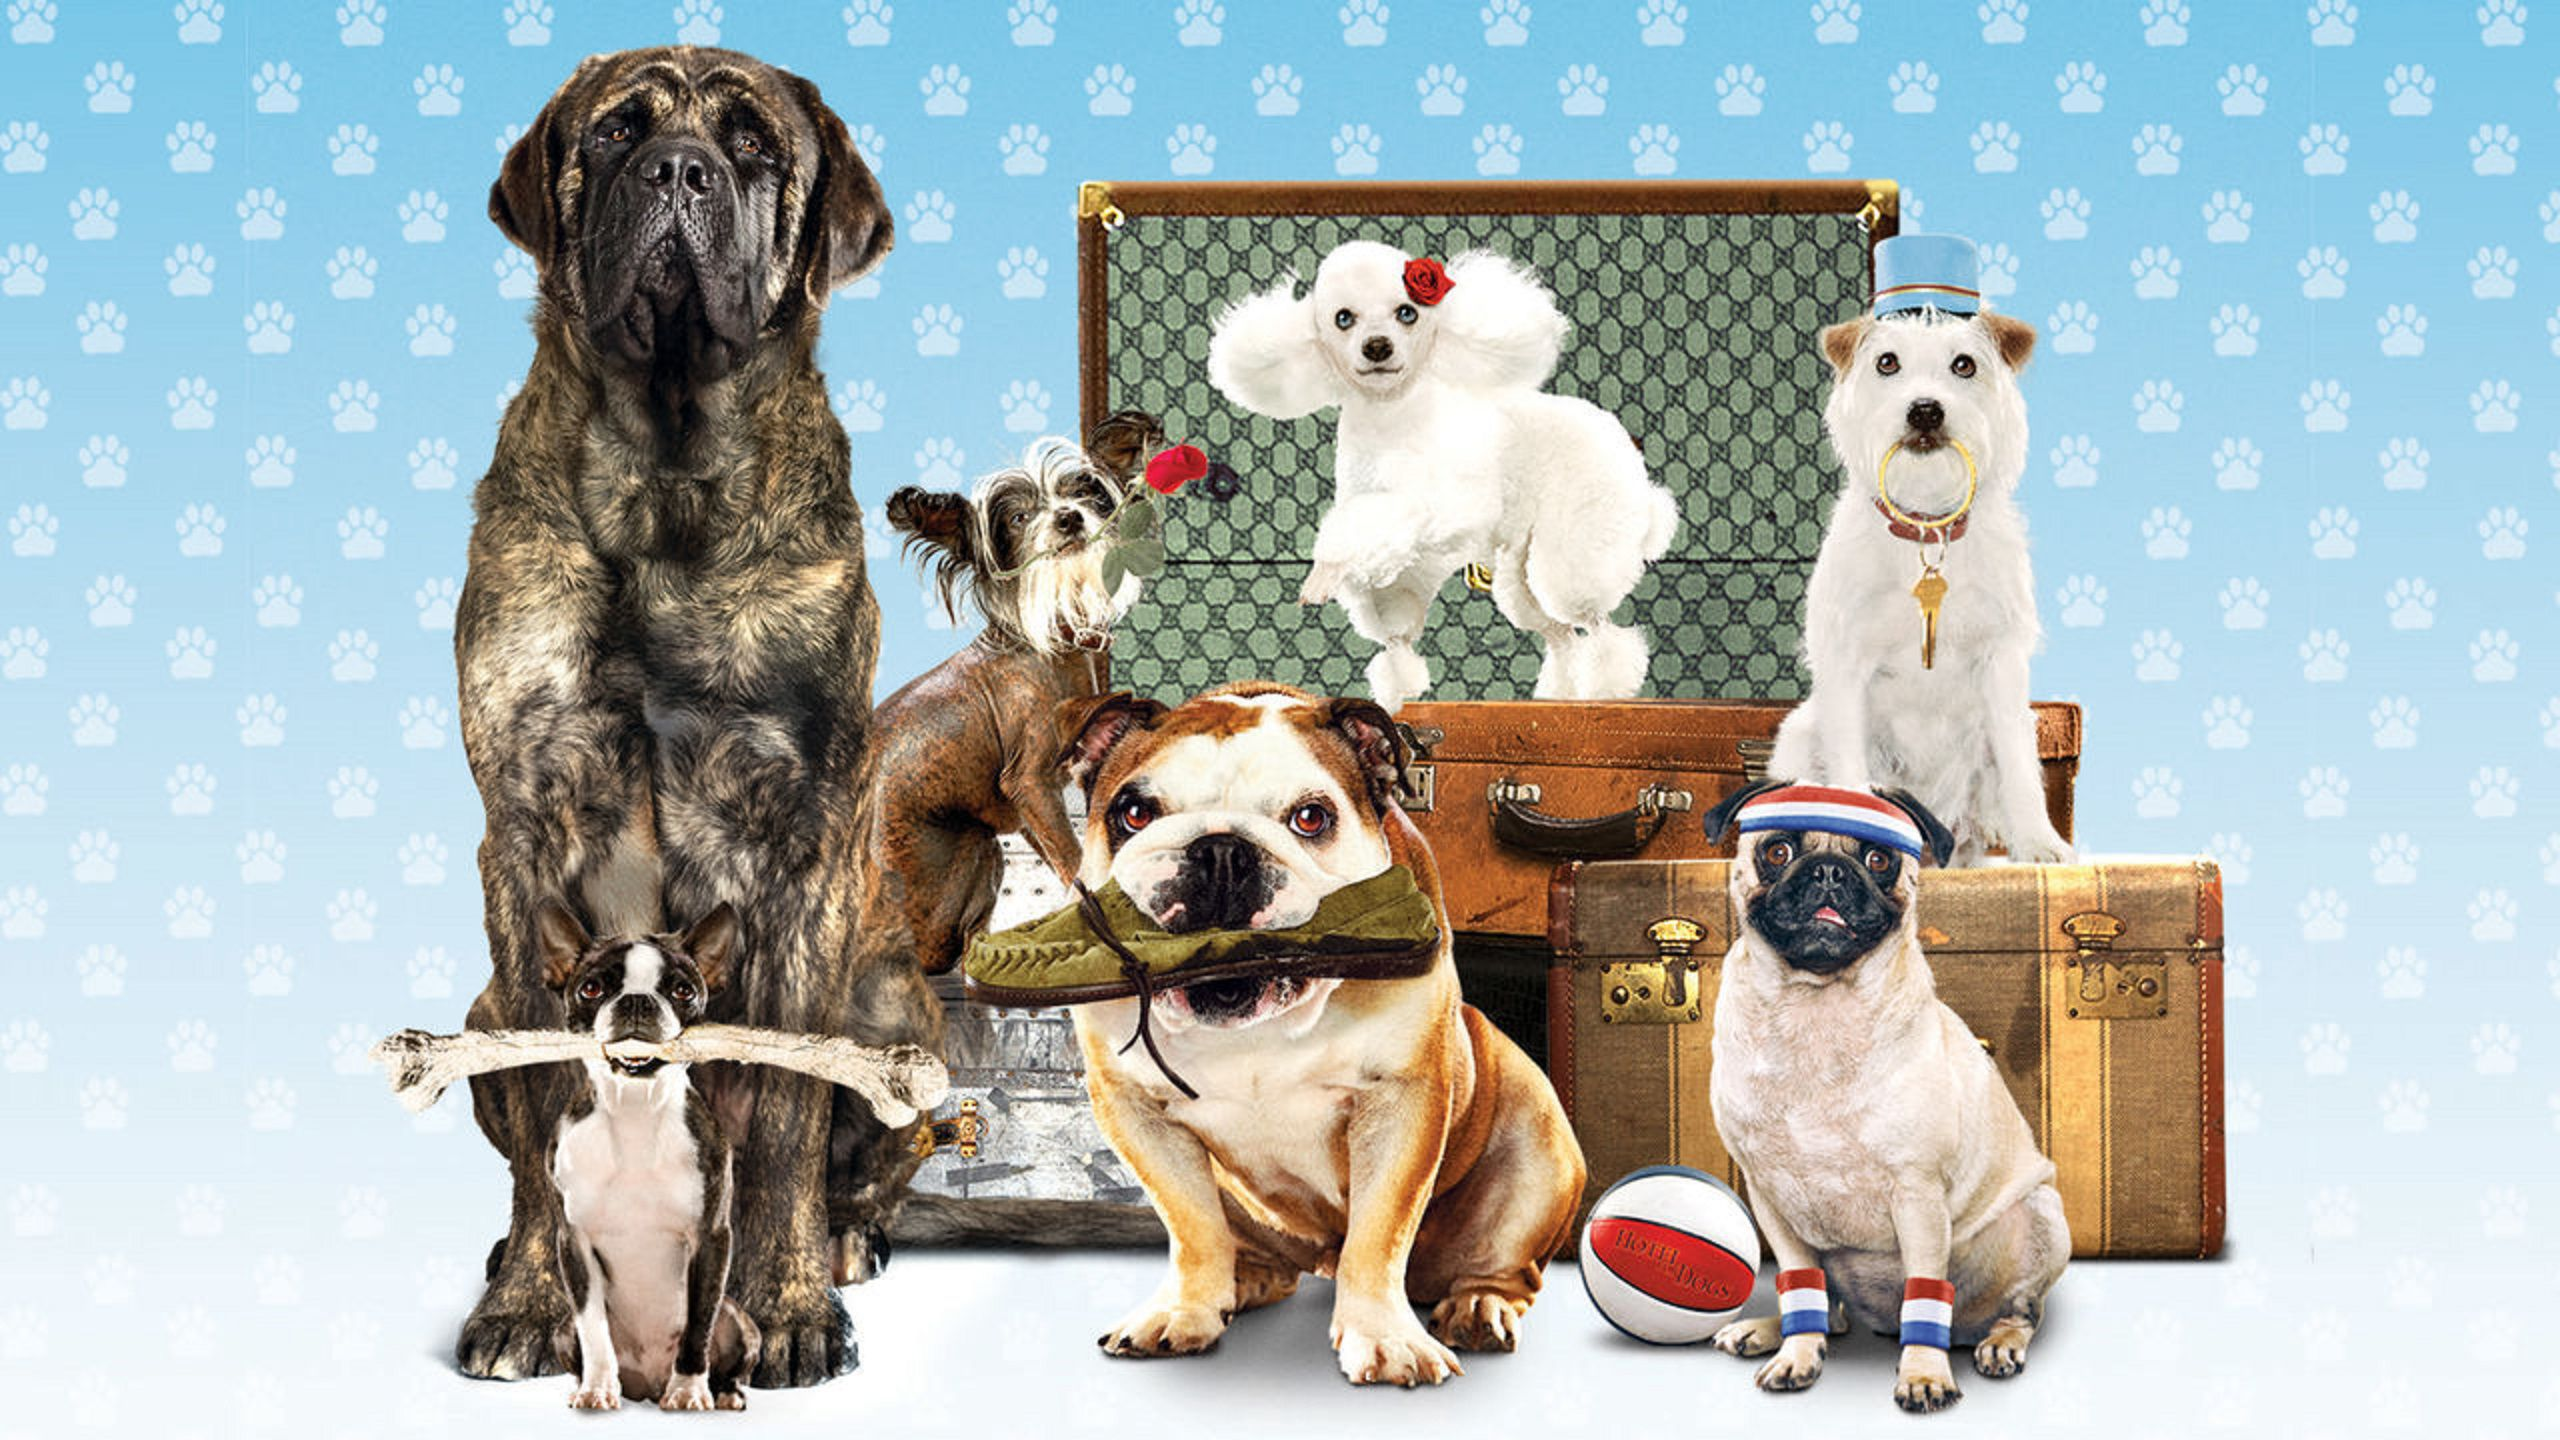 Hotel for Dogs 2009 wallpaper and poster